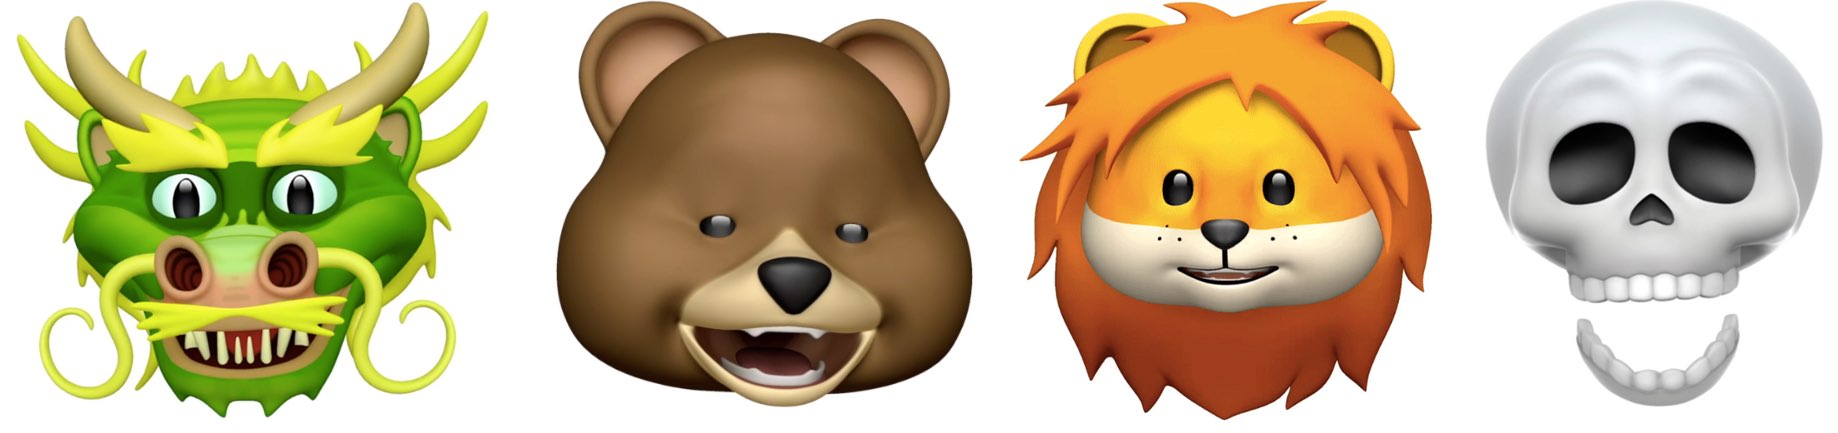 Video: 4 new Animoji characters in iOS 11 3—lion, dragon